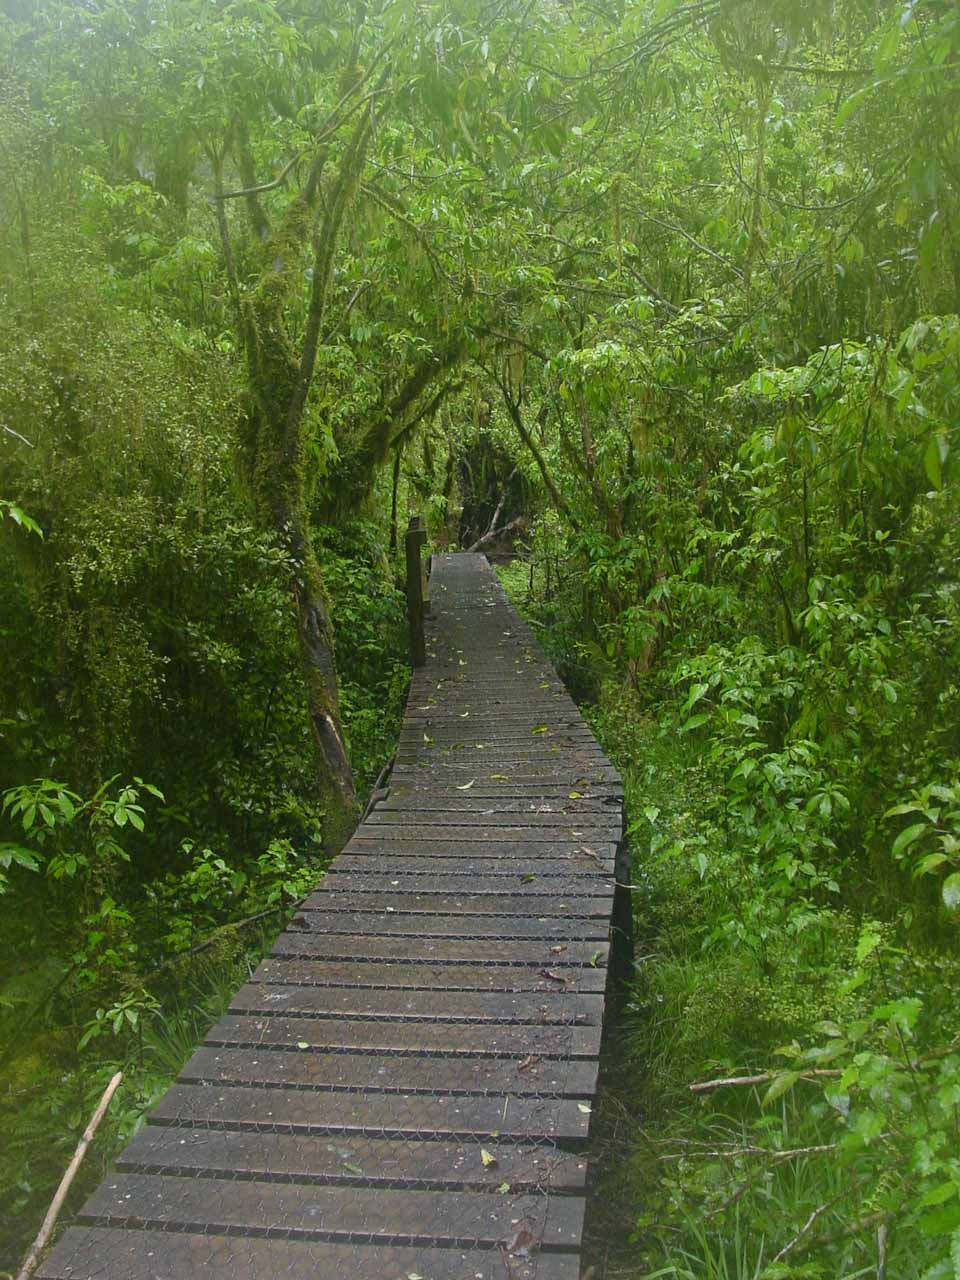 The boardwalk going through a very thick part of the jungle